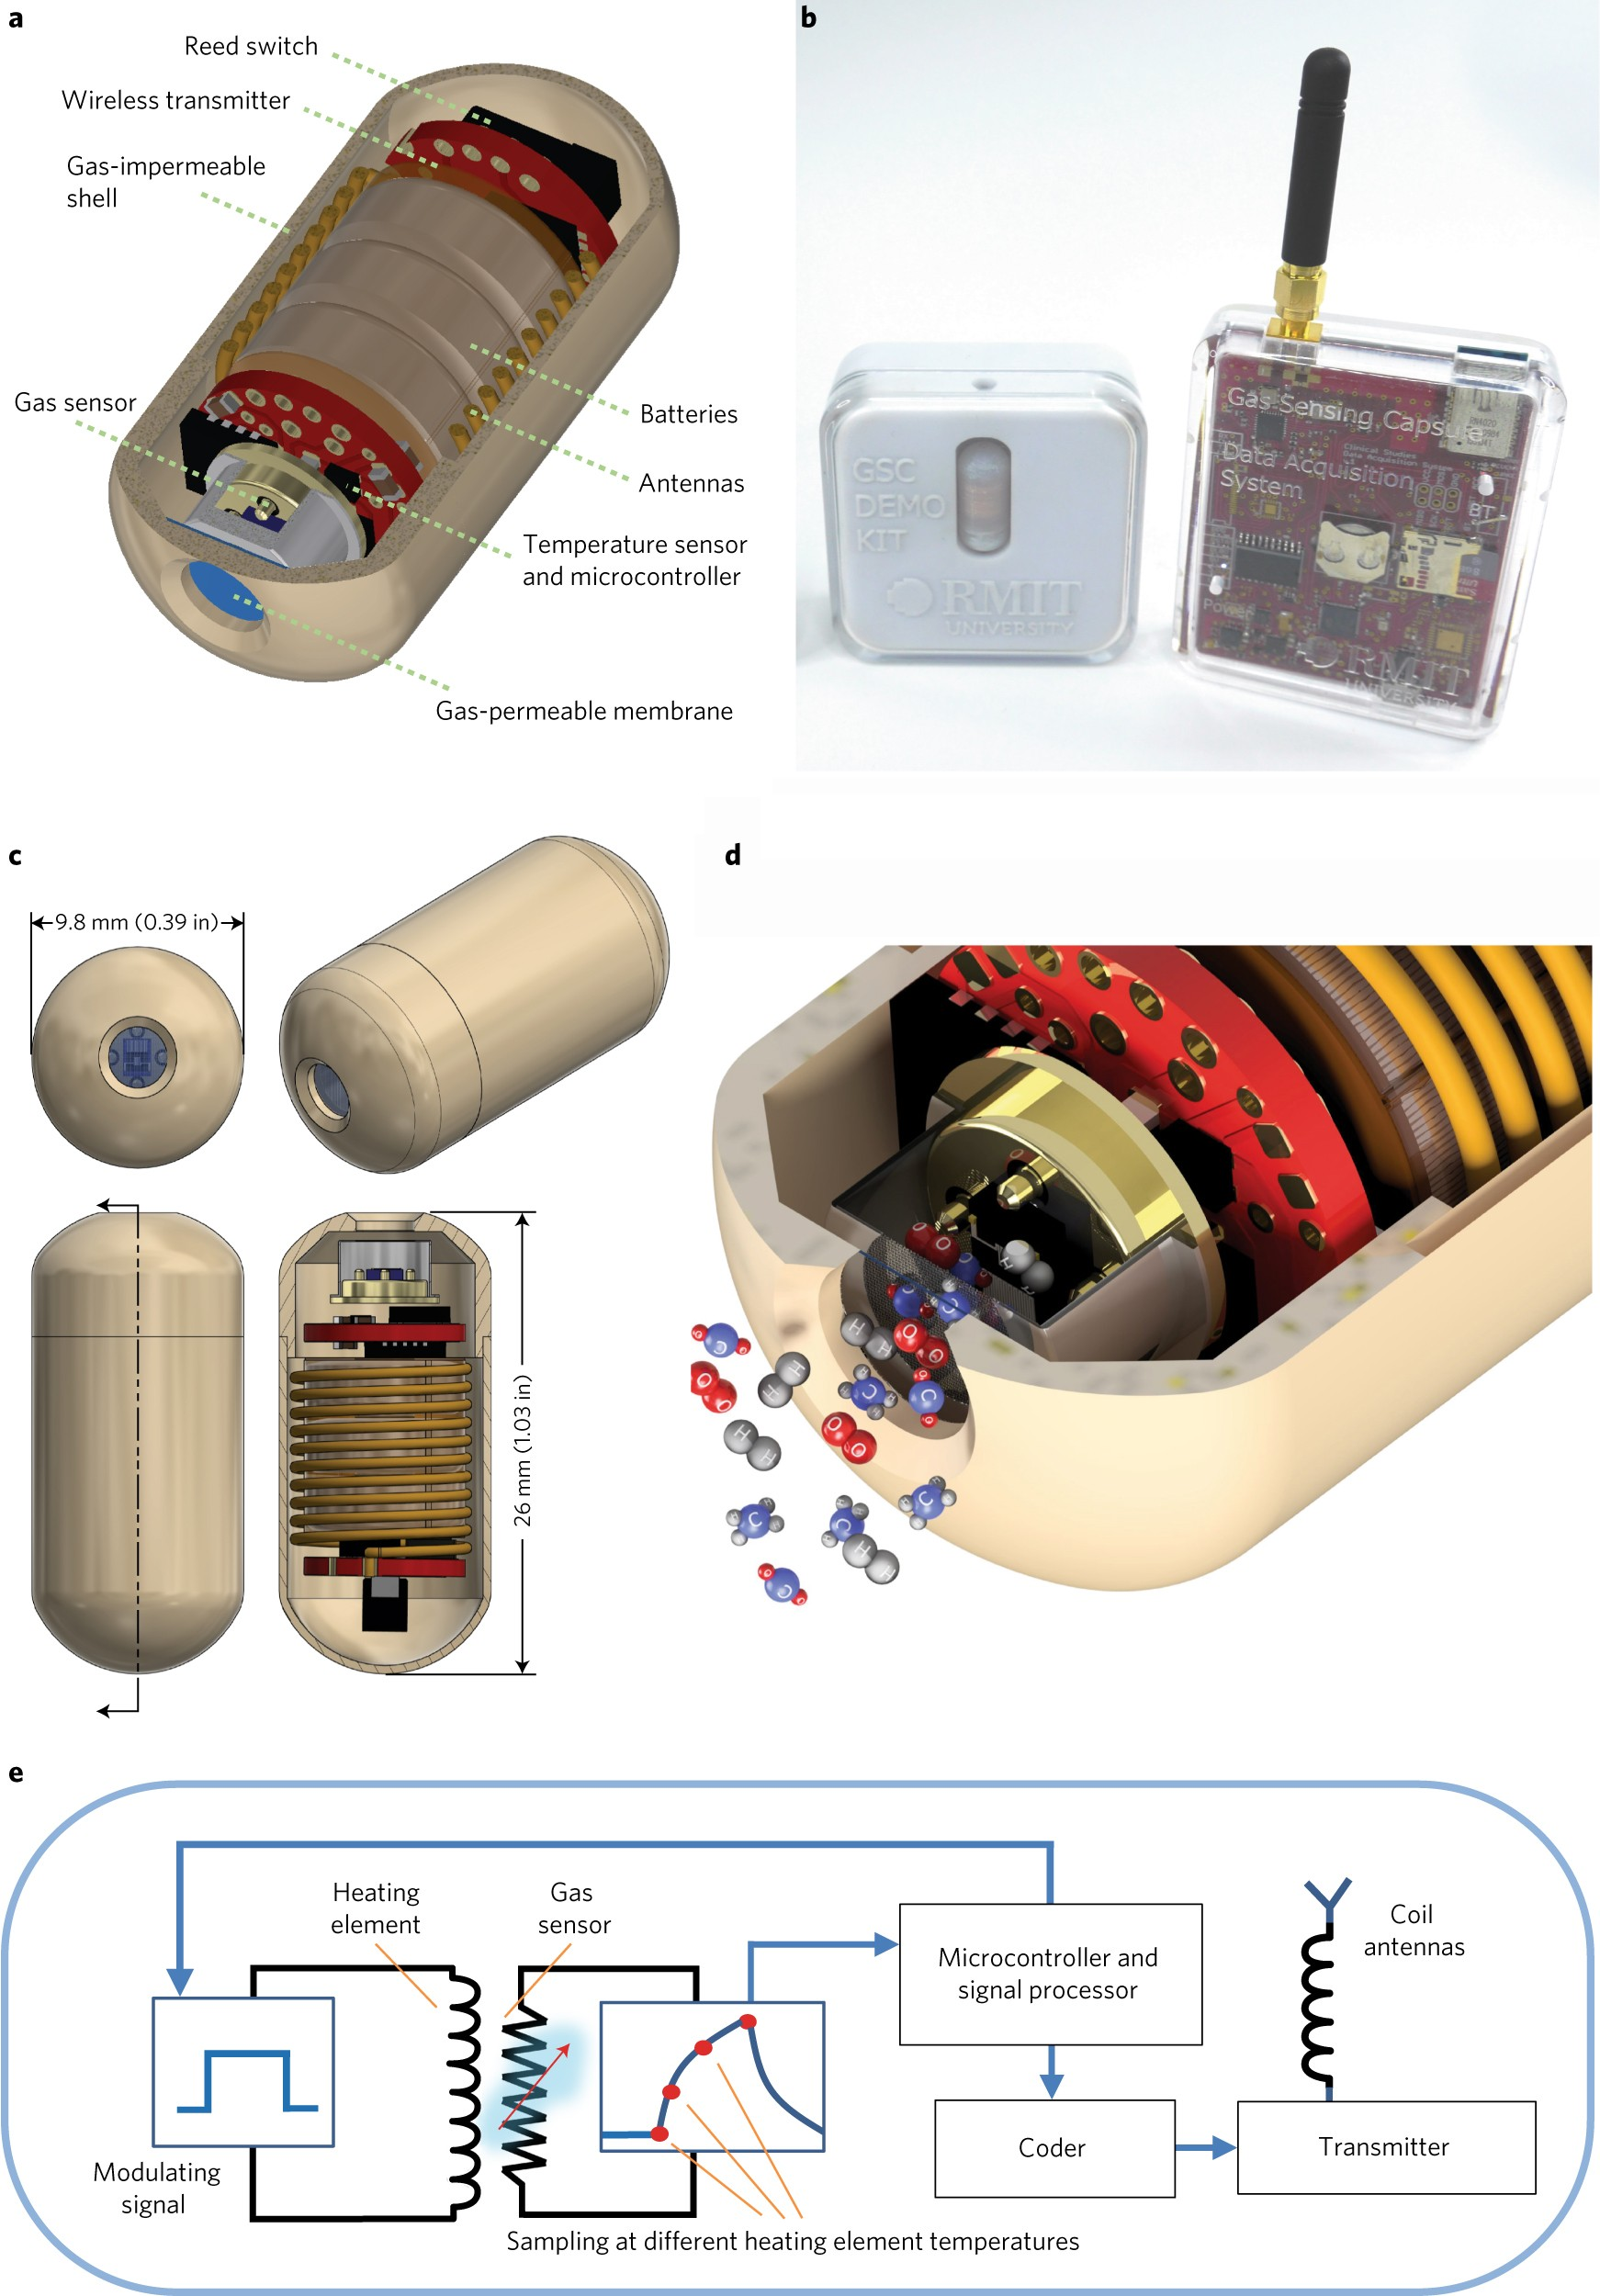 A Human Pilot Trial Of Ingestible Electronic Capsules Capable Circuit Design University Melbourne Sensing Different Gases In The Gut Nature Electronics